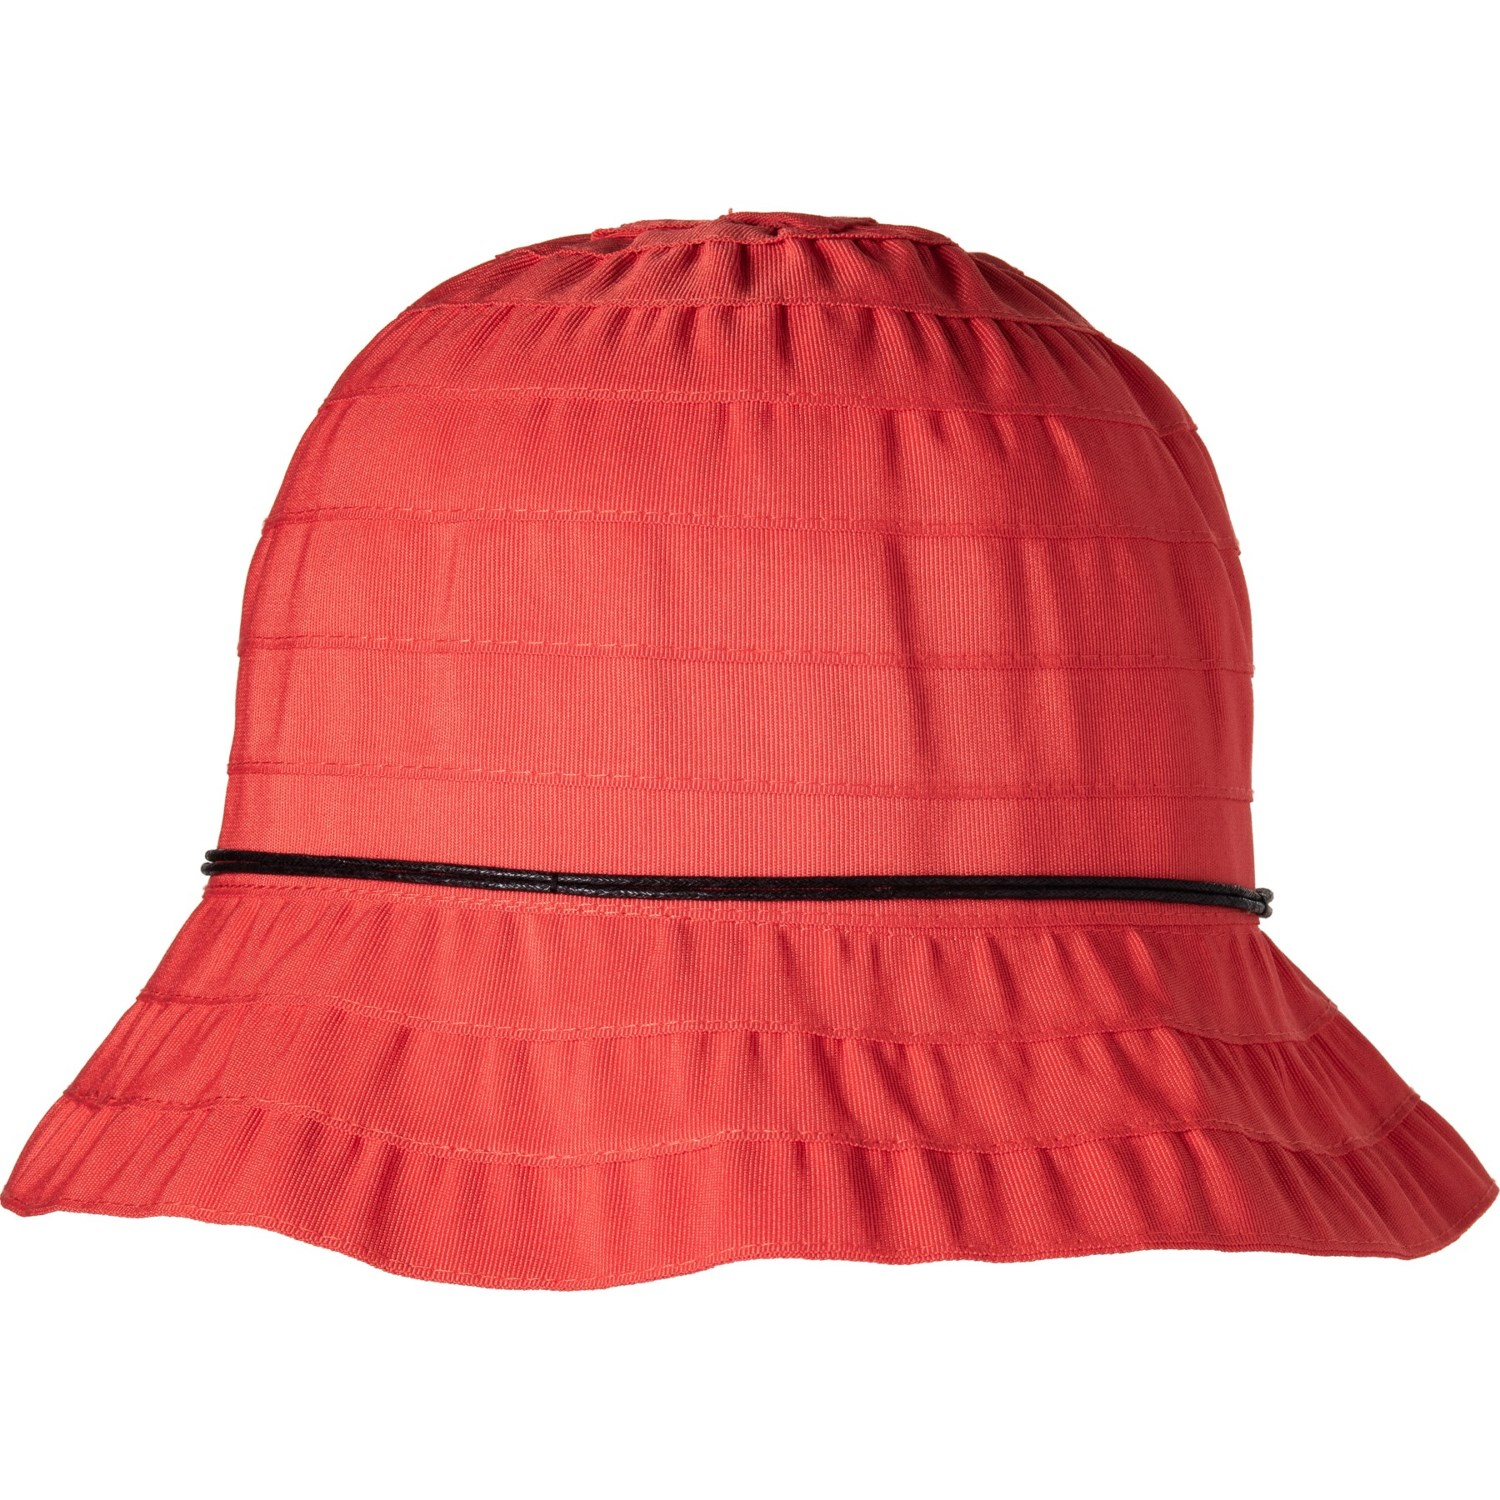 73474e139d64a9 Dorfman Pacific Packable Ribbon Bucket Hat (For Women) in Red ...